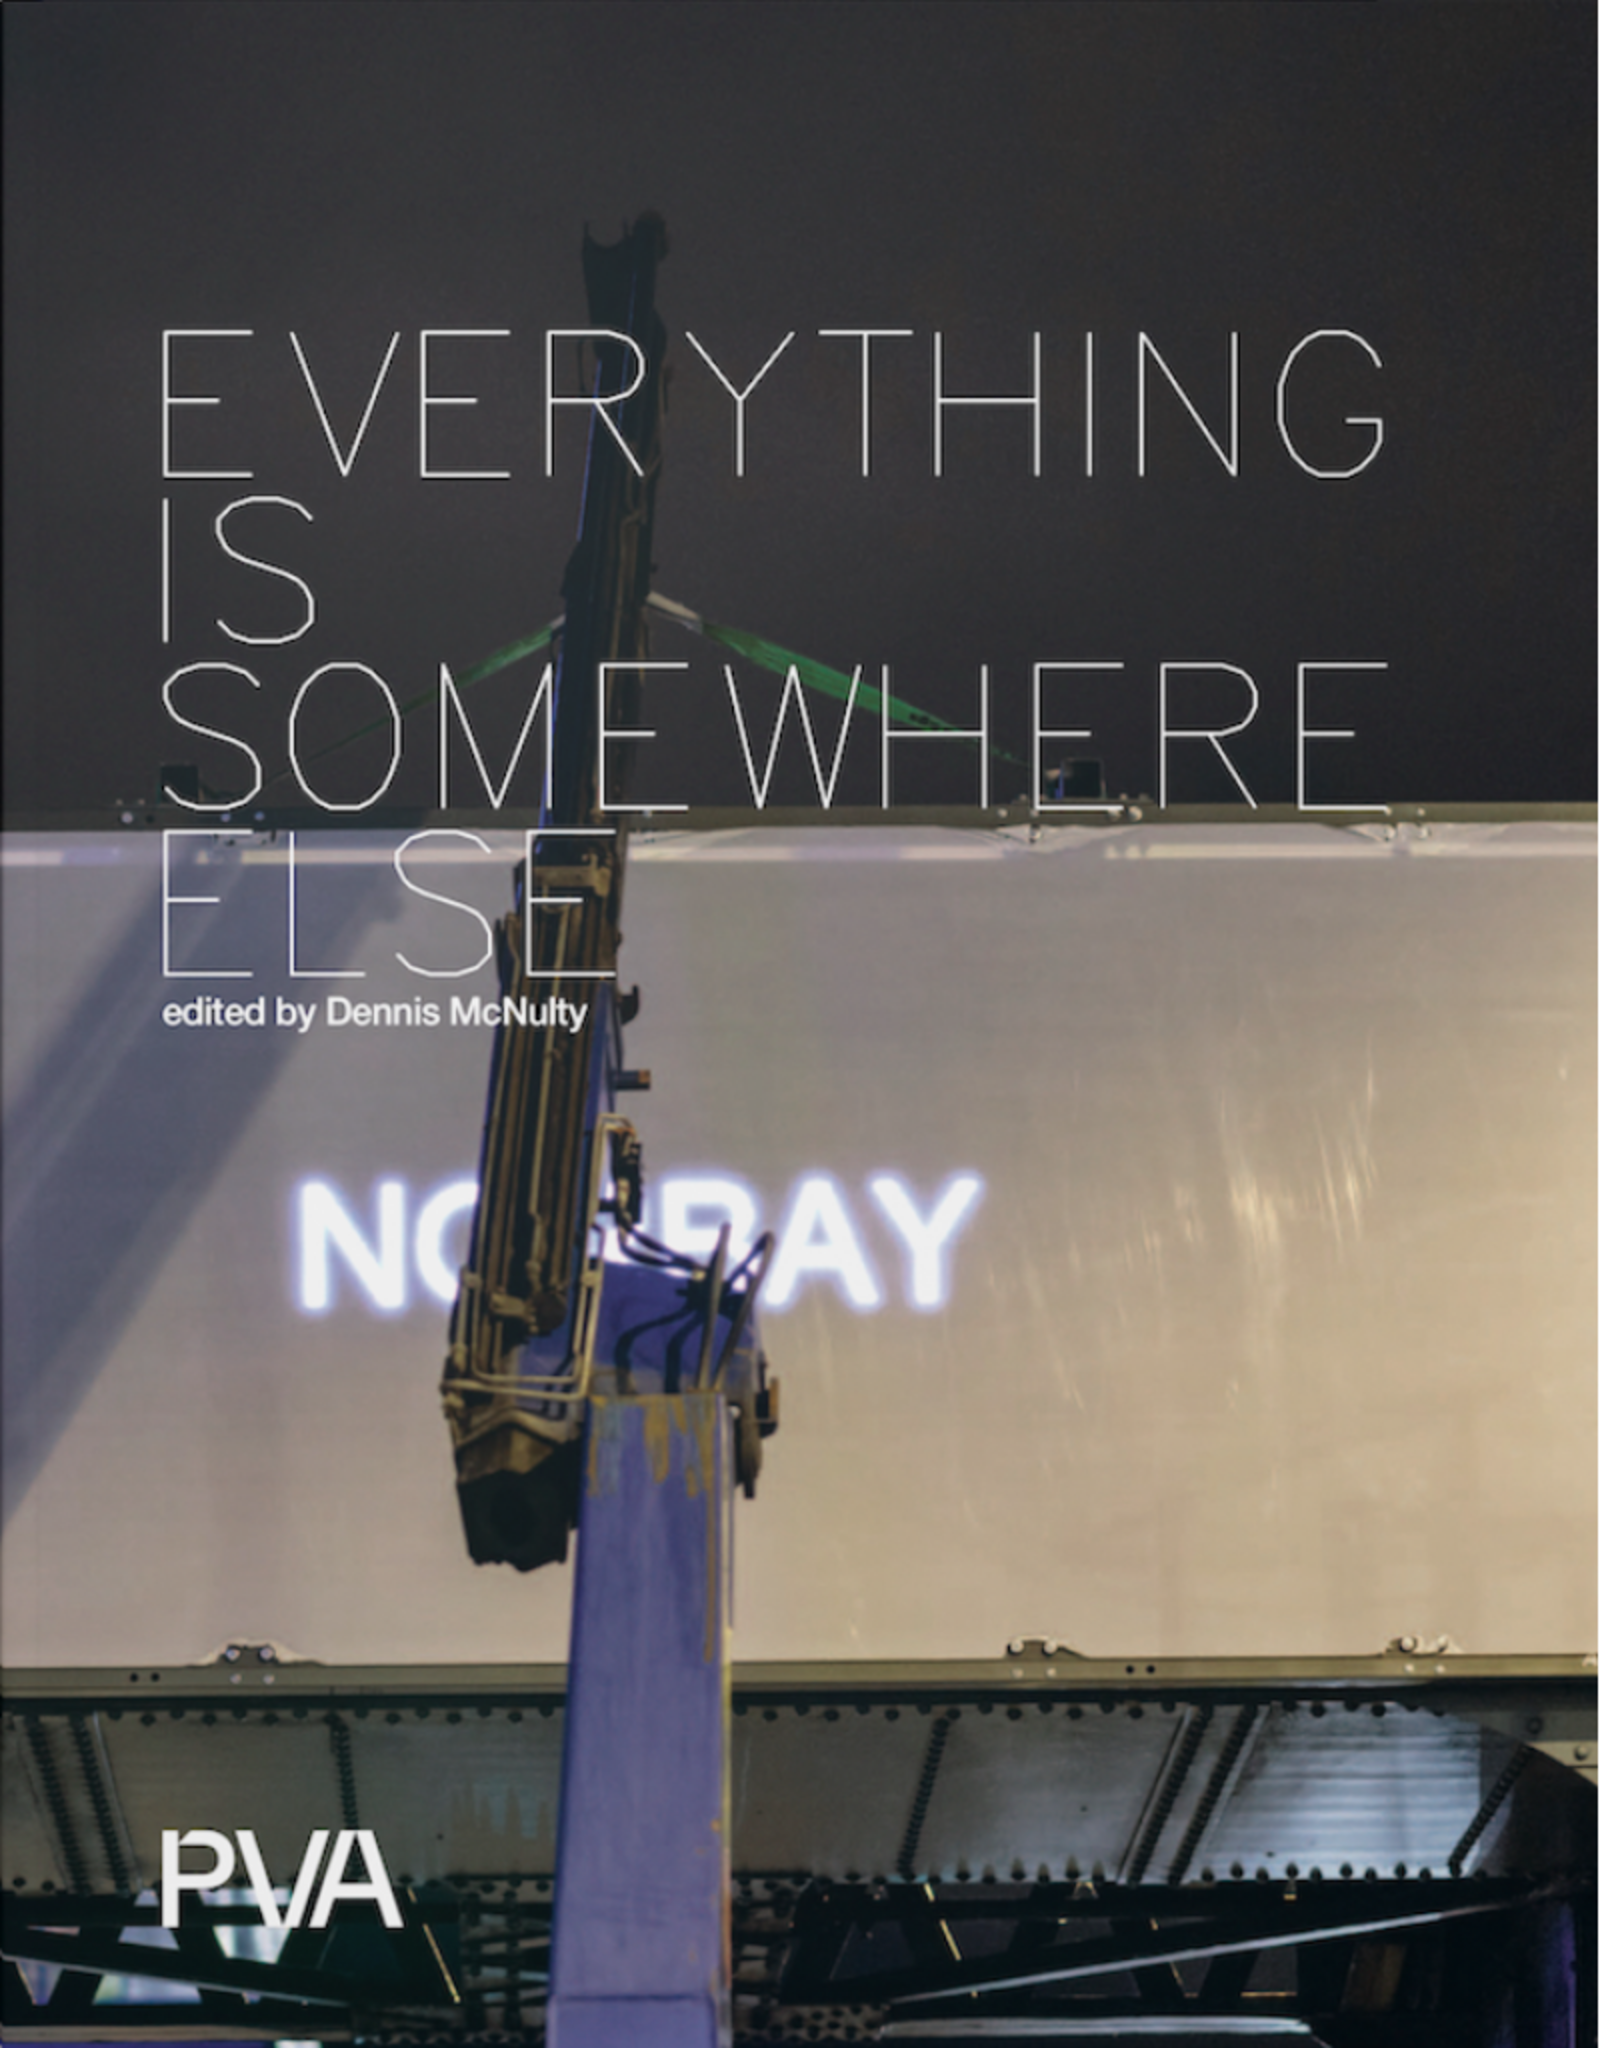 Paper Visual Art Everything is Somewhere Else - Edited by Dennis McNulty